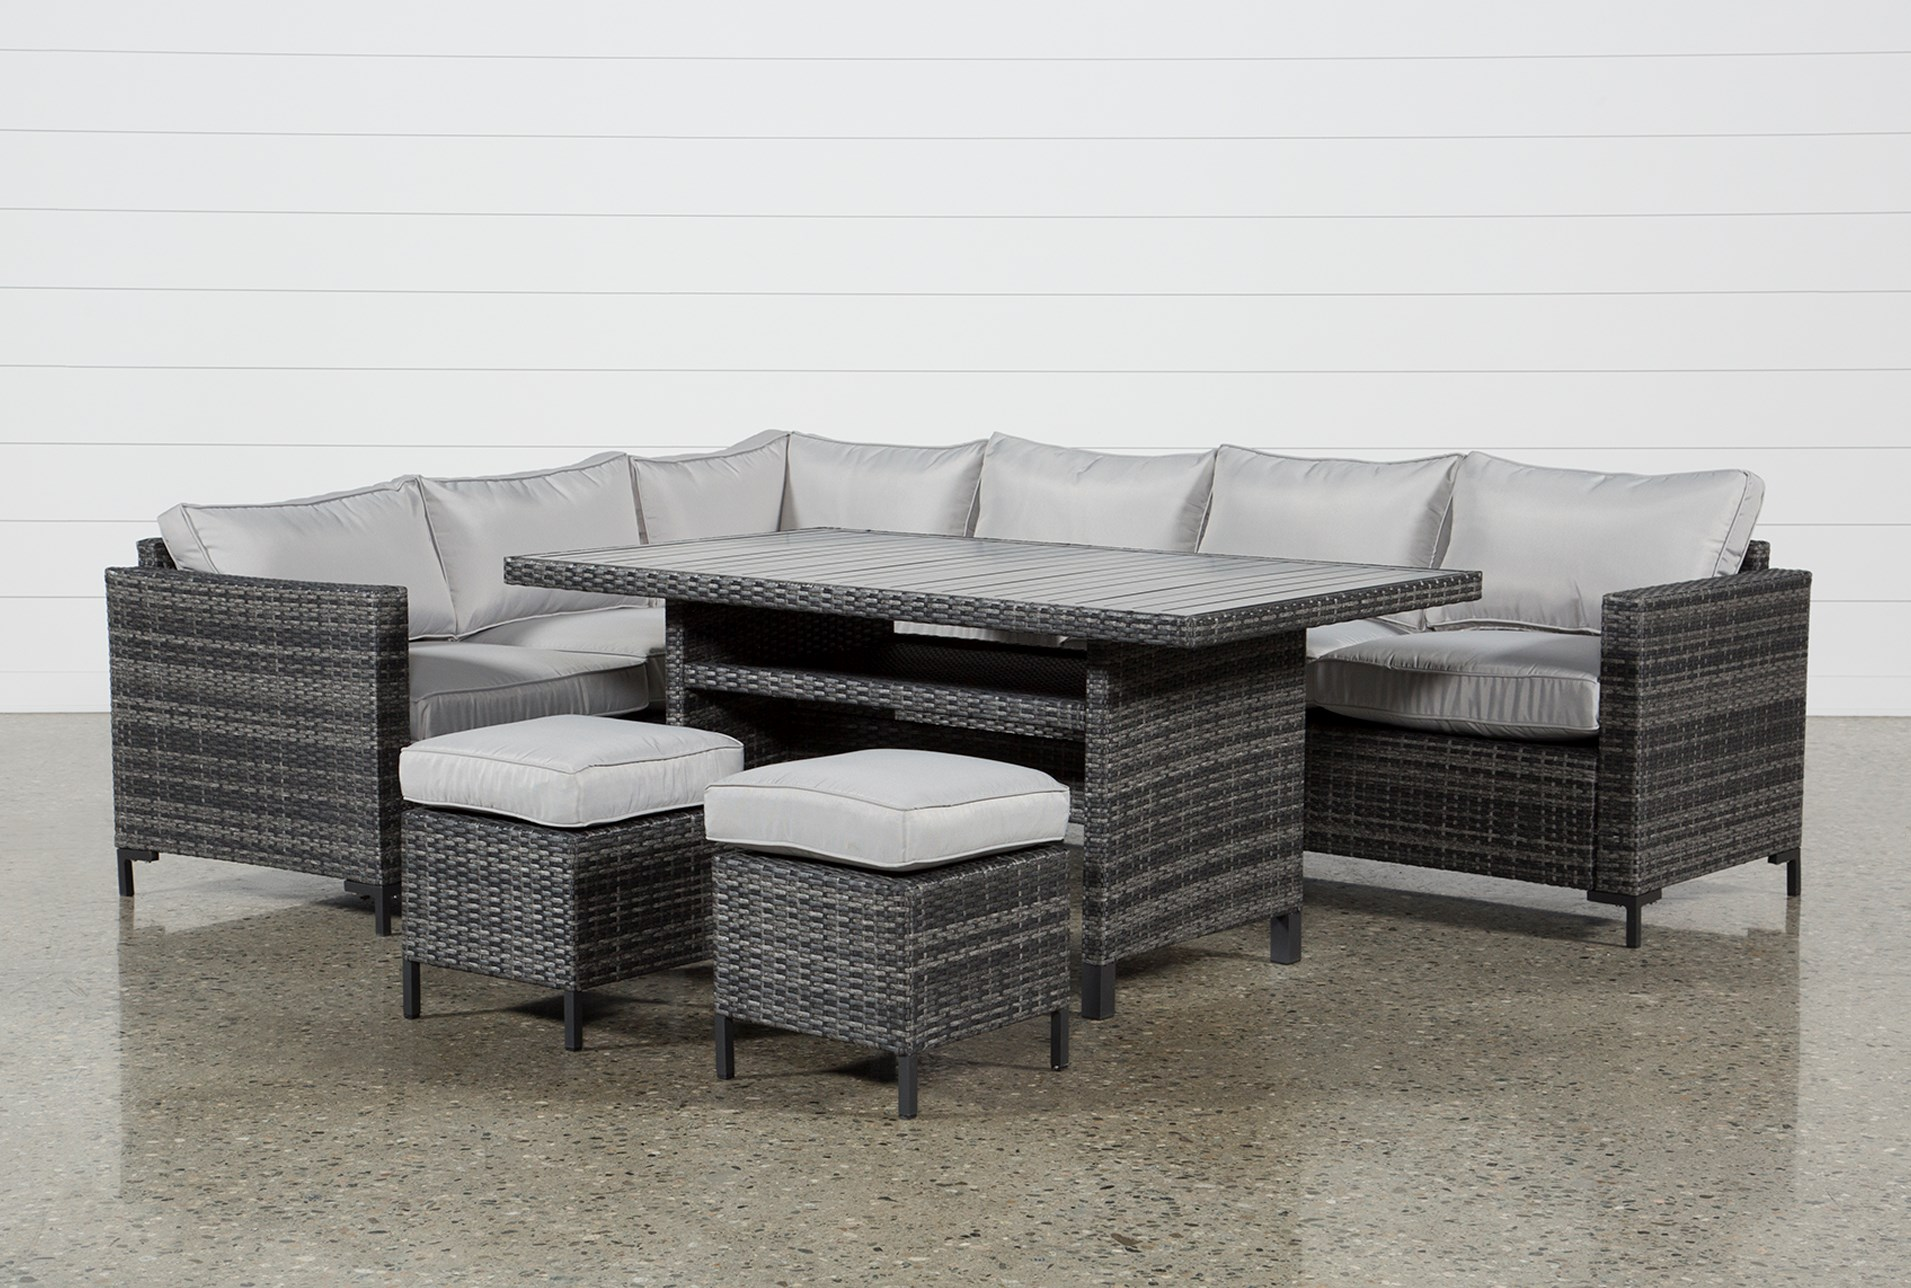 Outdoor Domingo Banquette Lounge With 2 Ottomans Living